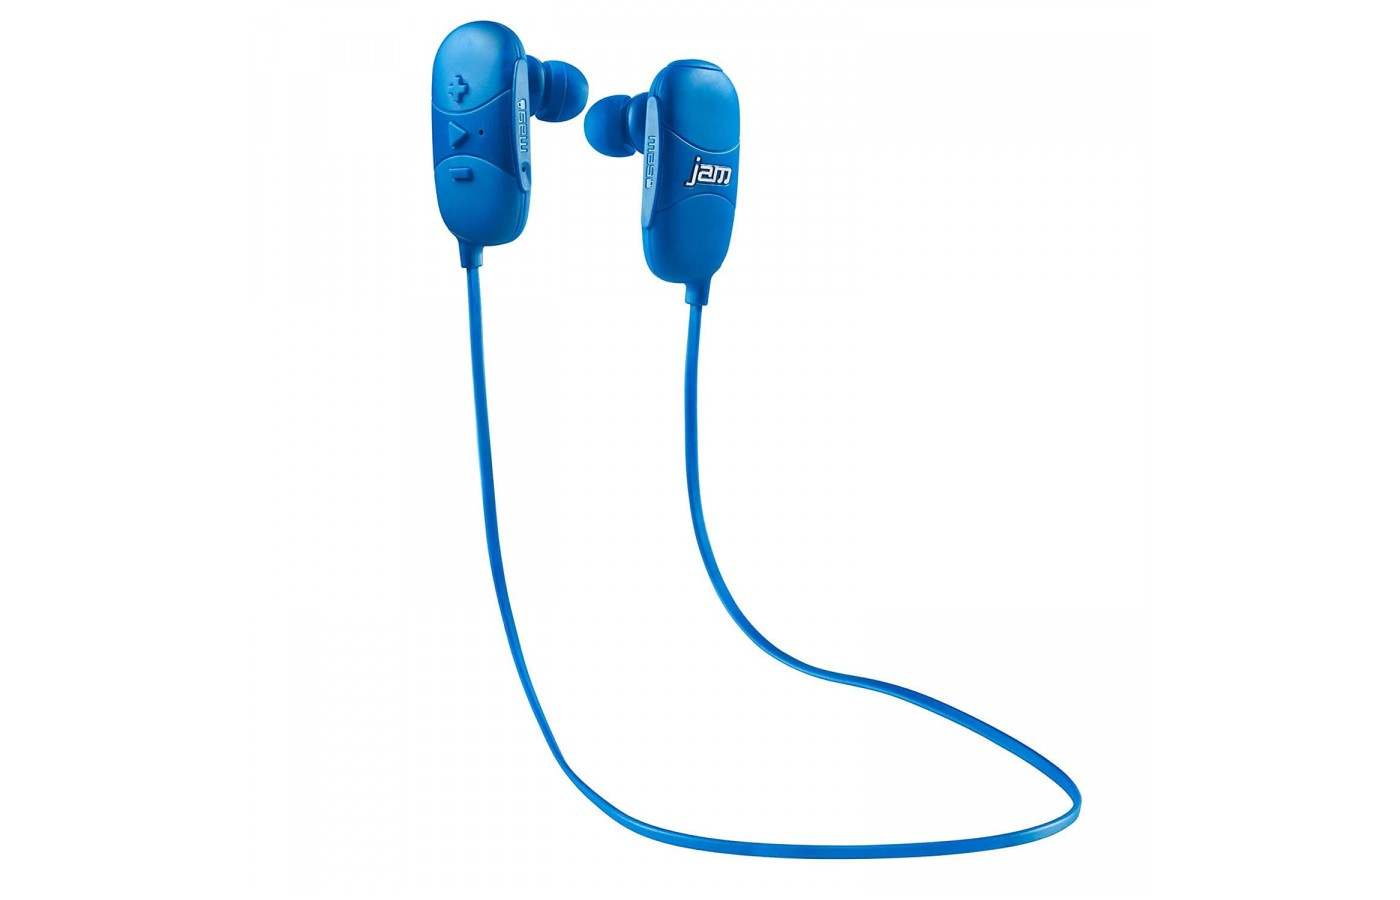 Jam Transit Wireless Earbuds Both